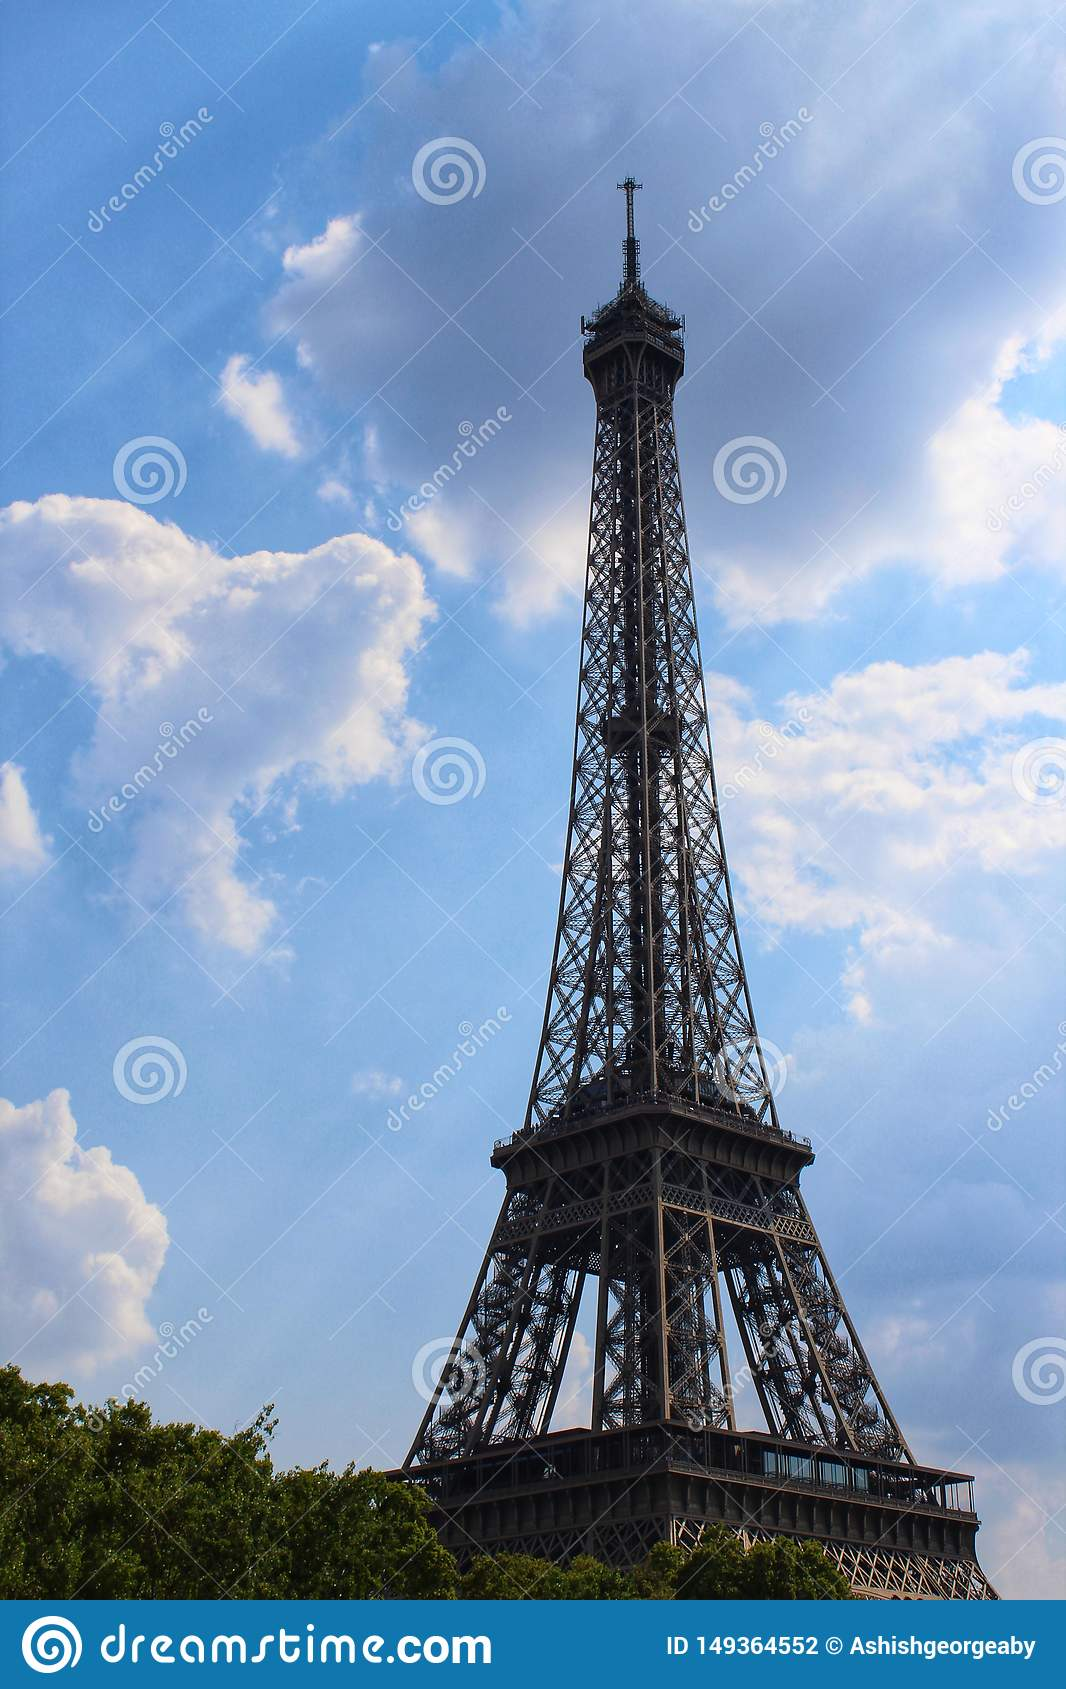 Eiffel tower touching the clouds